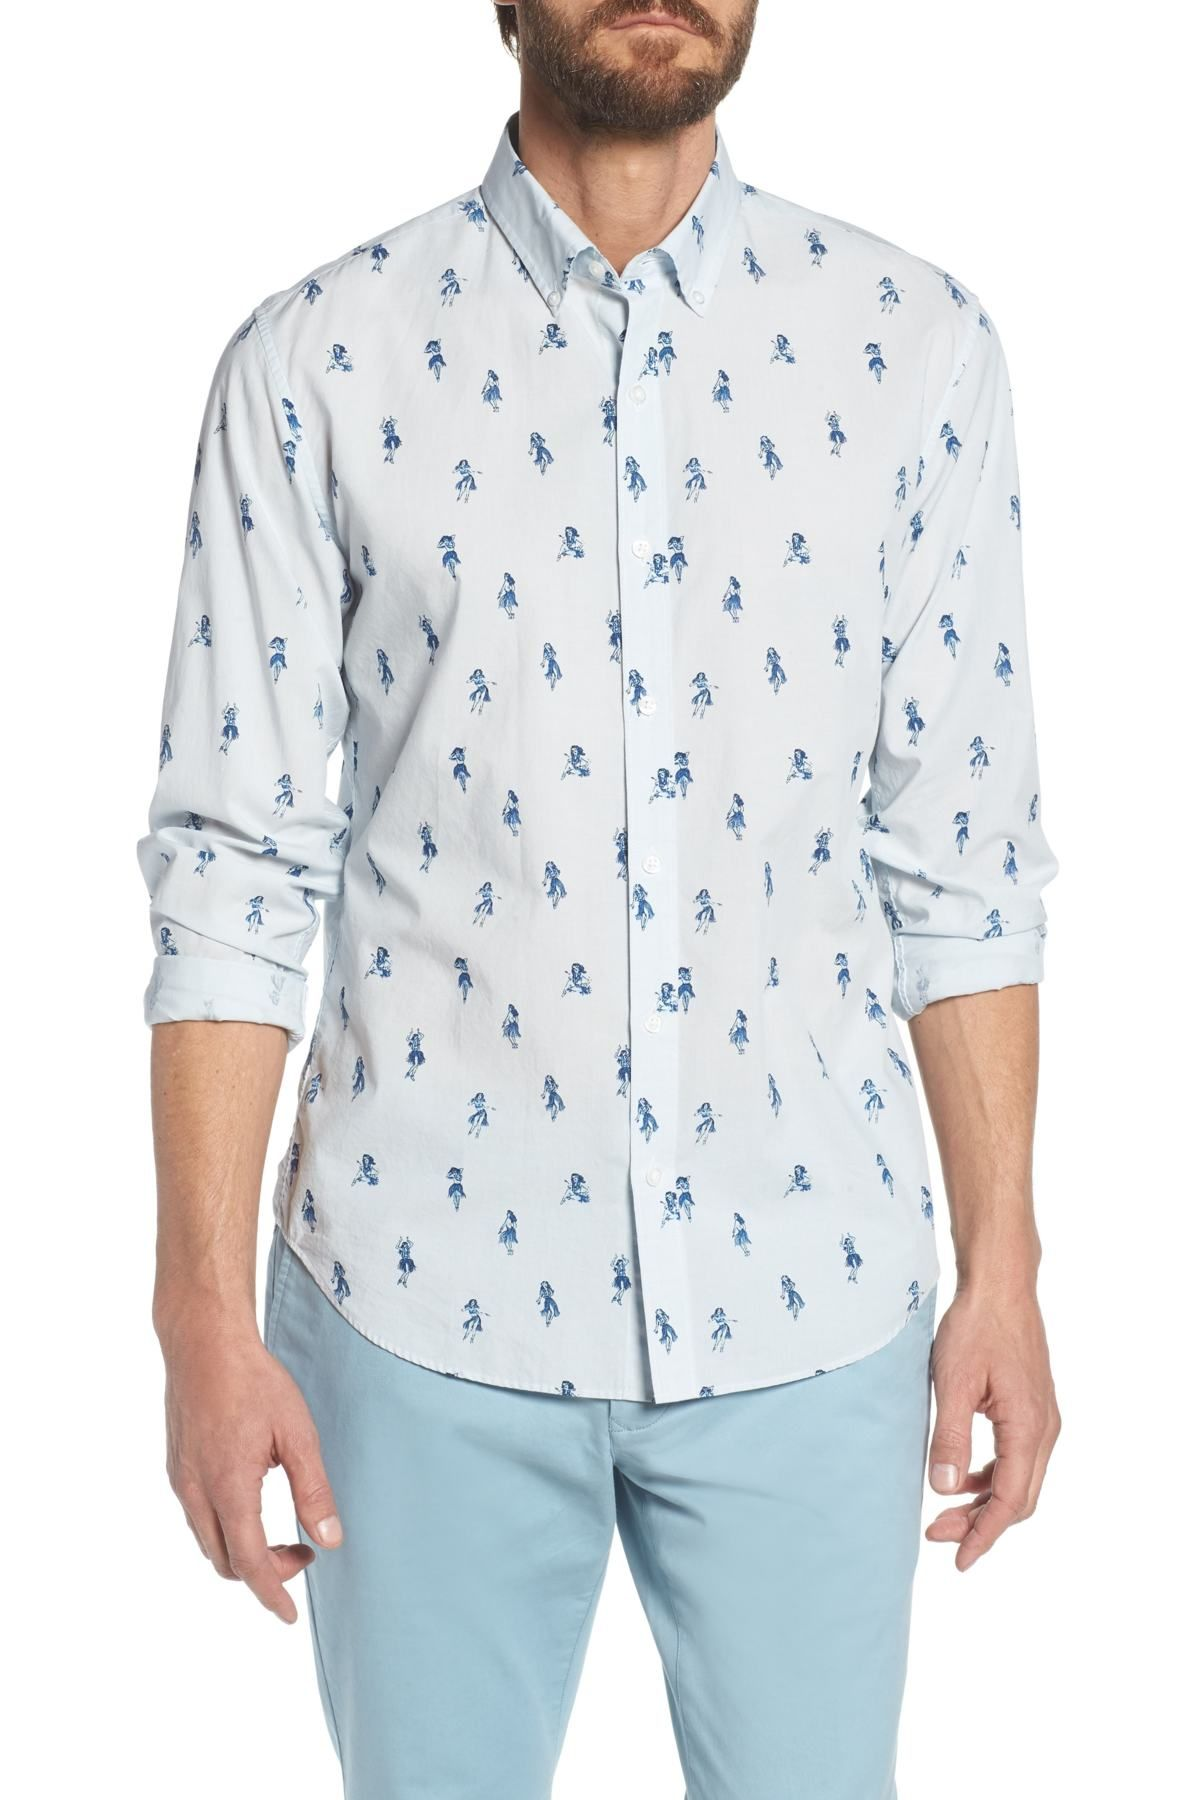 a9a3ad14cc1a Bonobos - Summerweight Slim Fit Hula Print Sport Shirt is now 0-60% off.  Free Shipping on orders over  100.